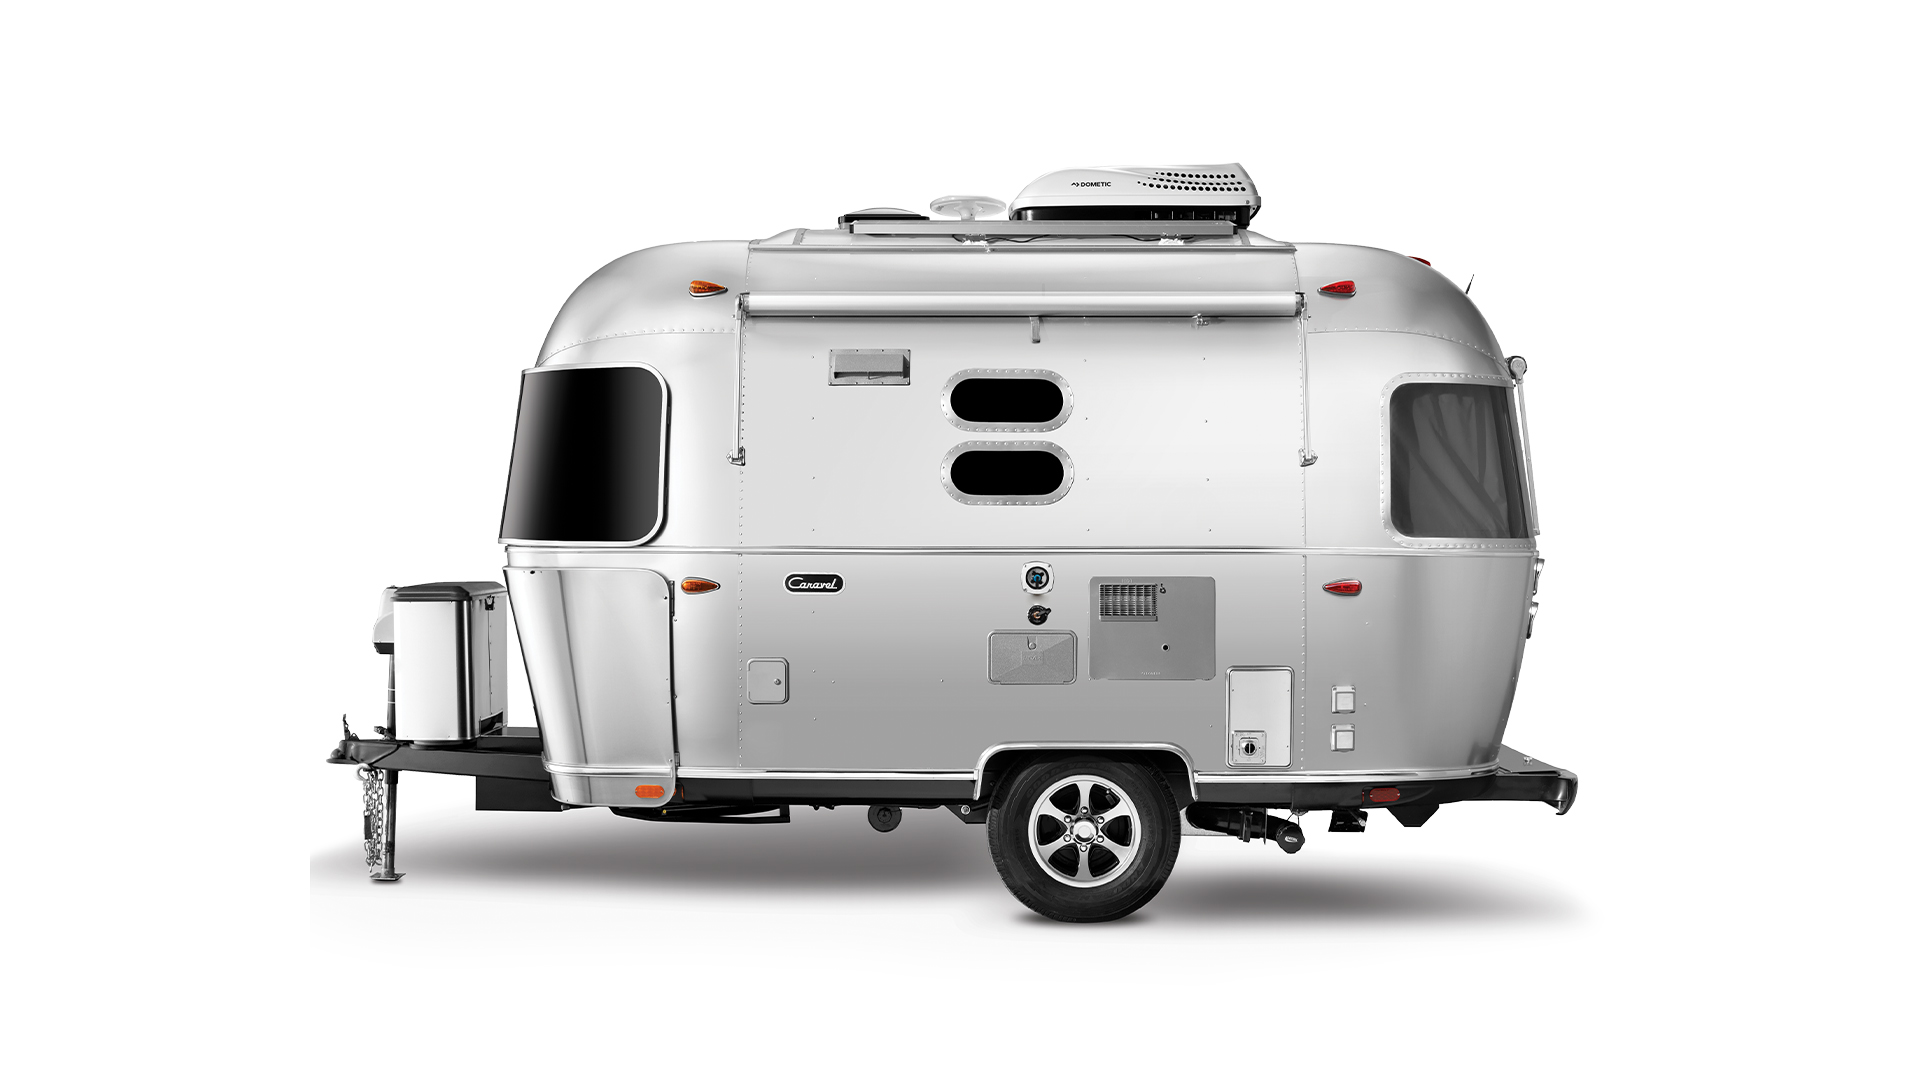 Airstream Caravel 16 foot travel trailer street side view